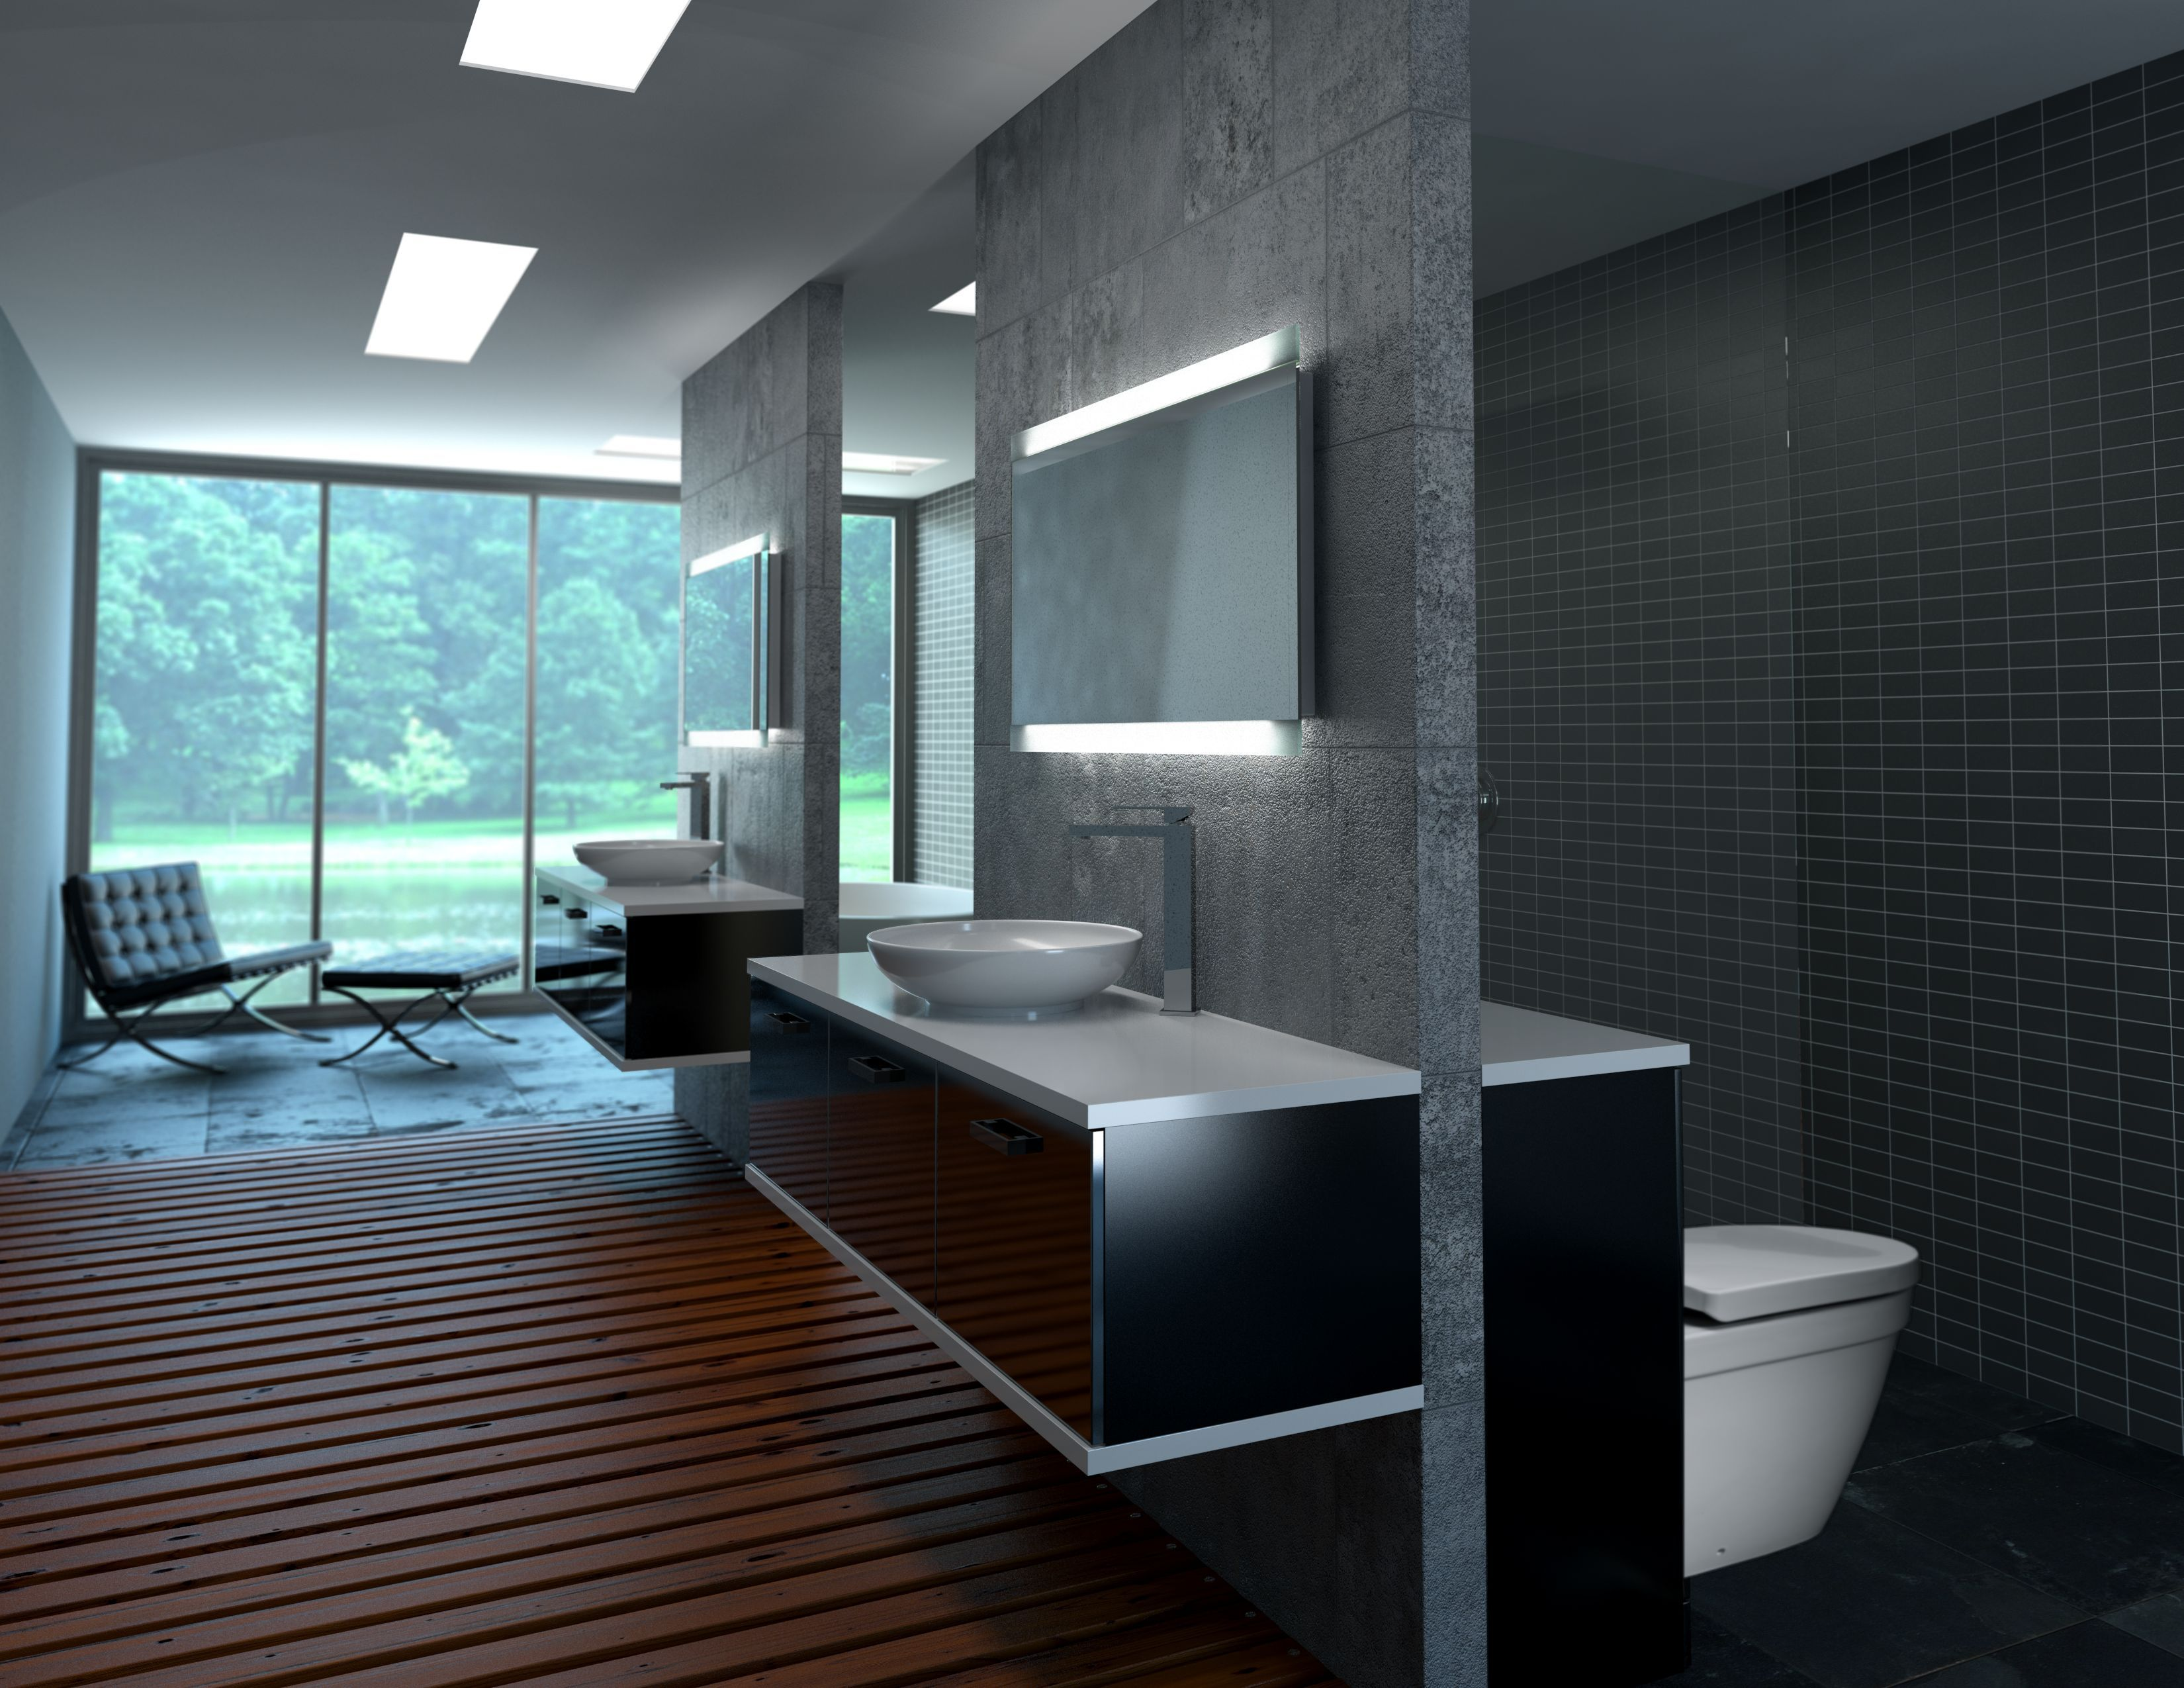 Serano Black- http://www.symphony-group.co.uk/products/bathrooms ...